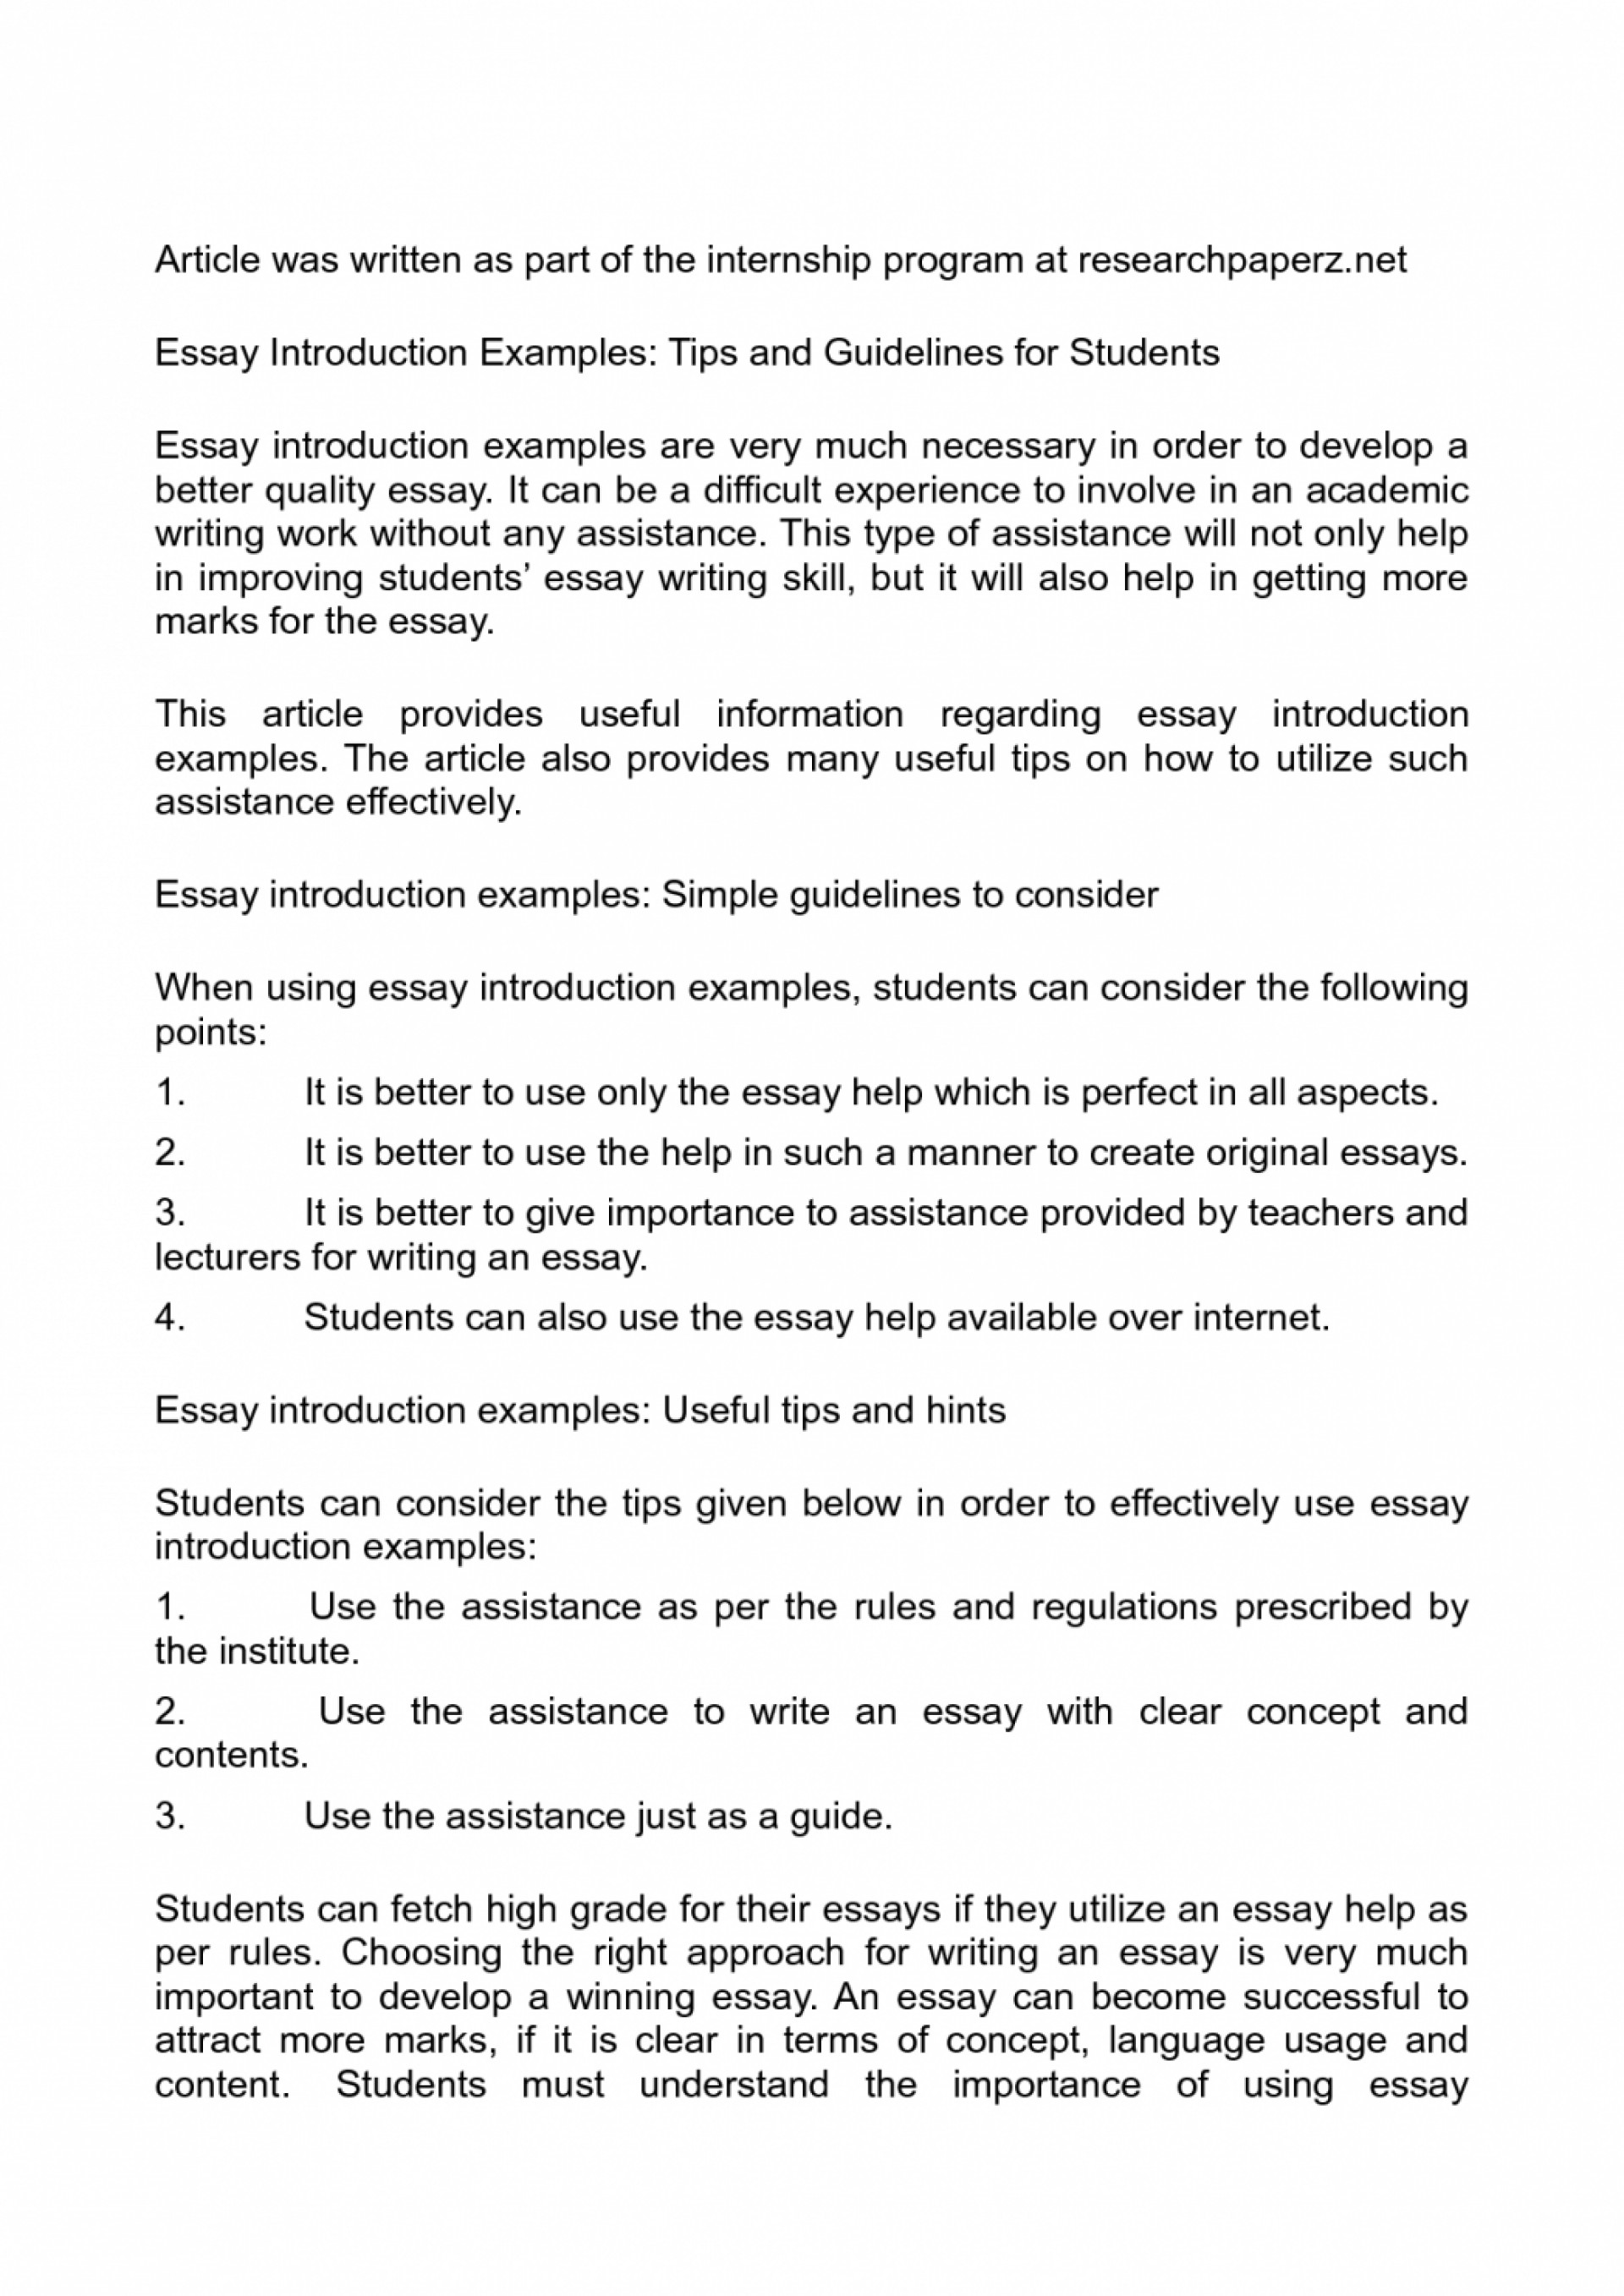 007 Essay Example How To Start Introduction On Good Paragraph An Eyx5t Write University For In Ielts Academic Analytical Argumentative Hook Examples Great Intro 1048x1482 Awesome A Sentence College 1920